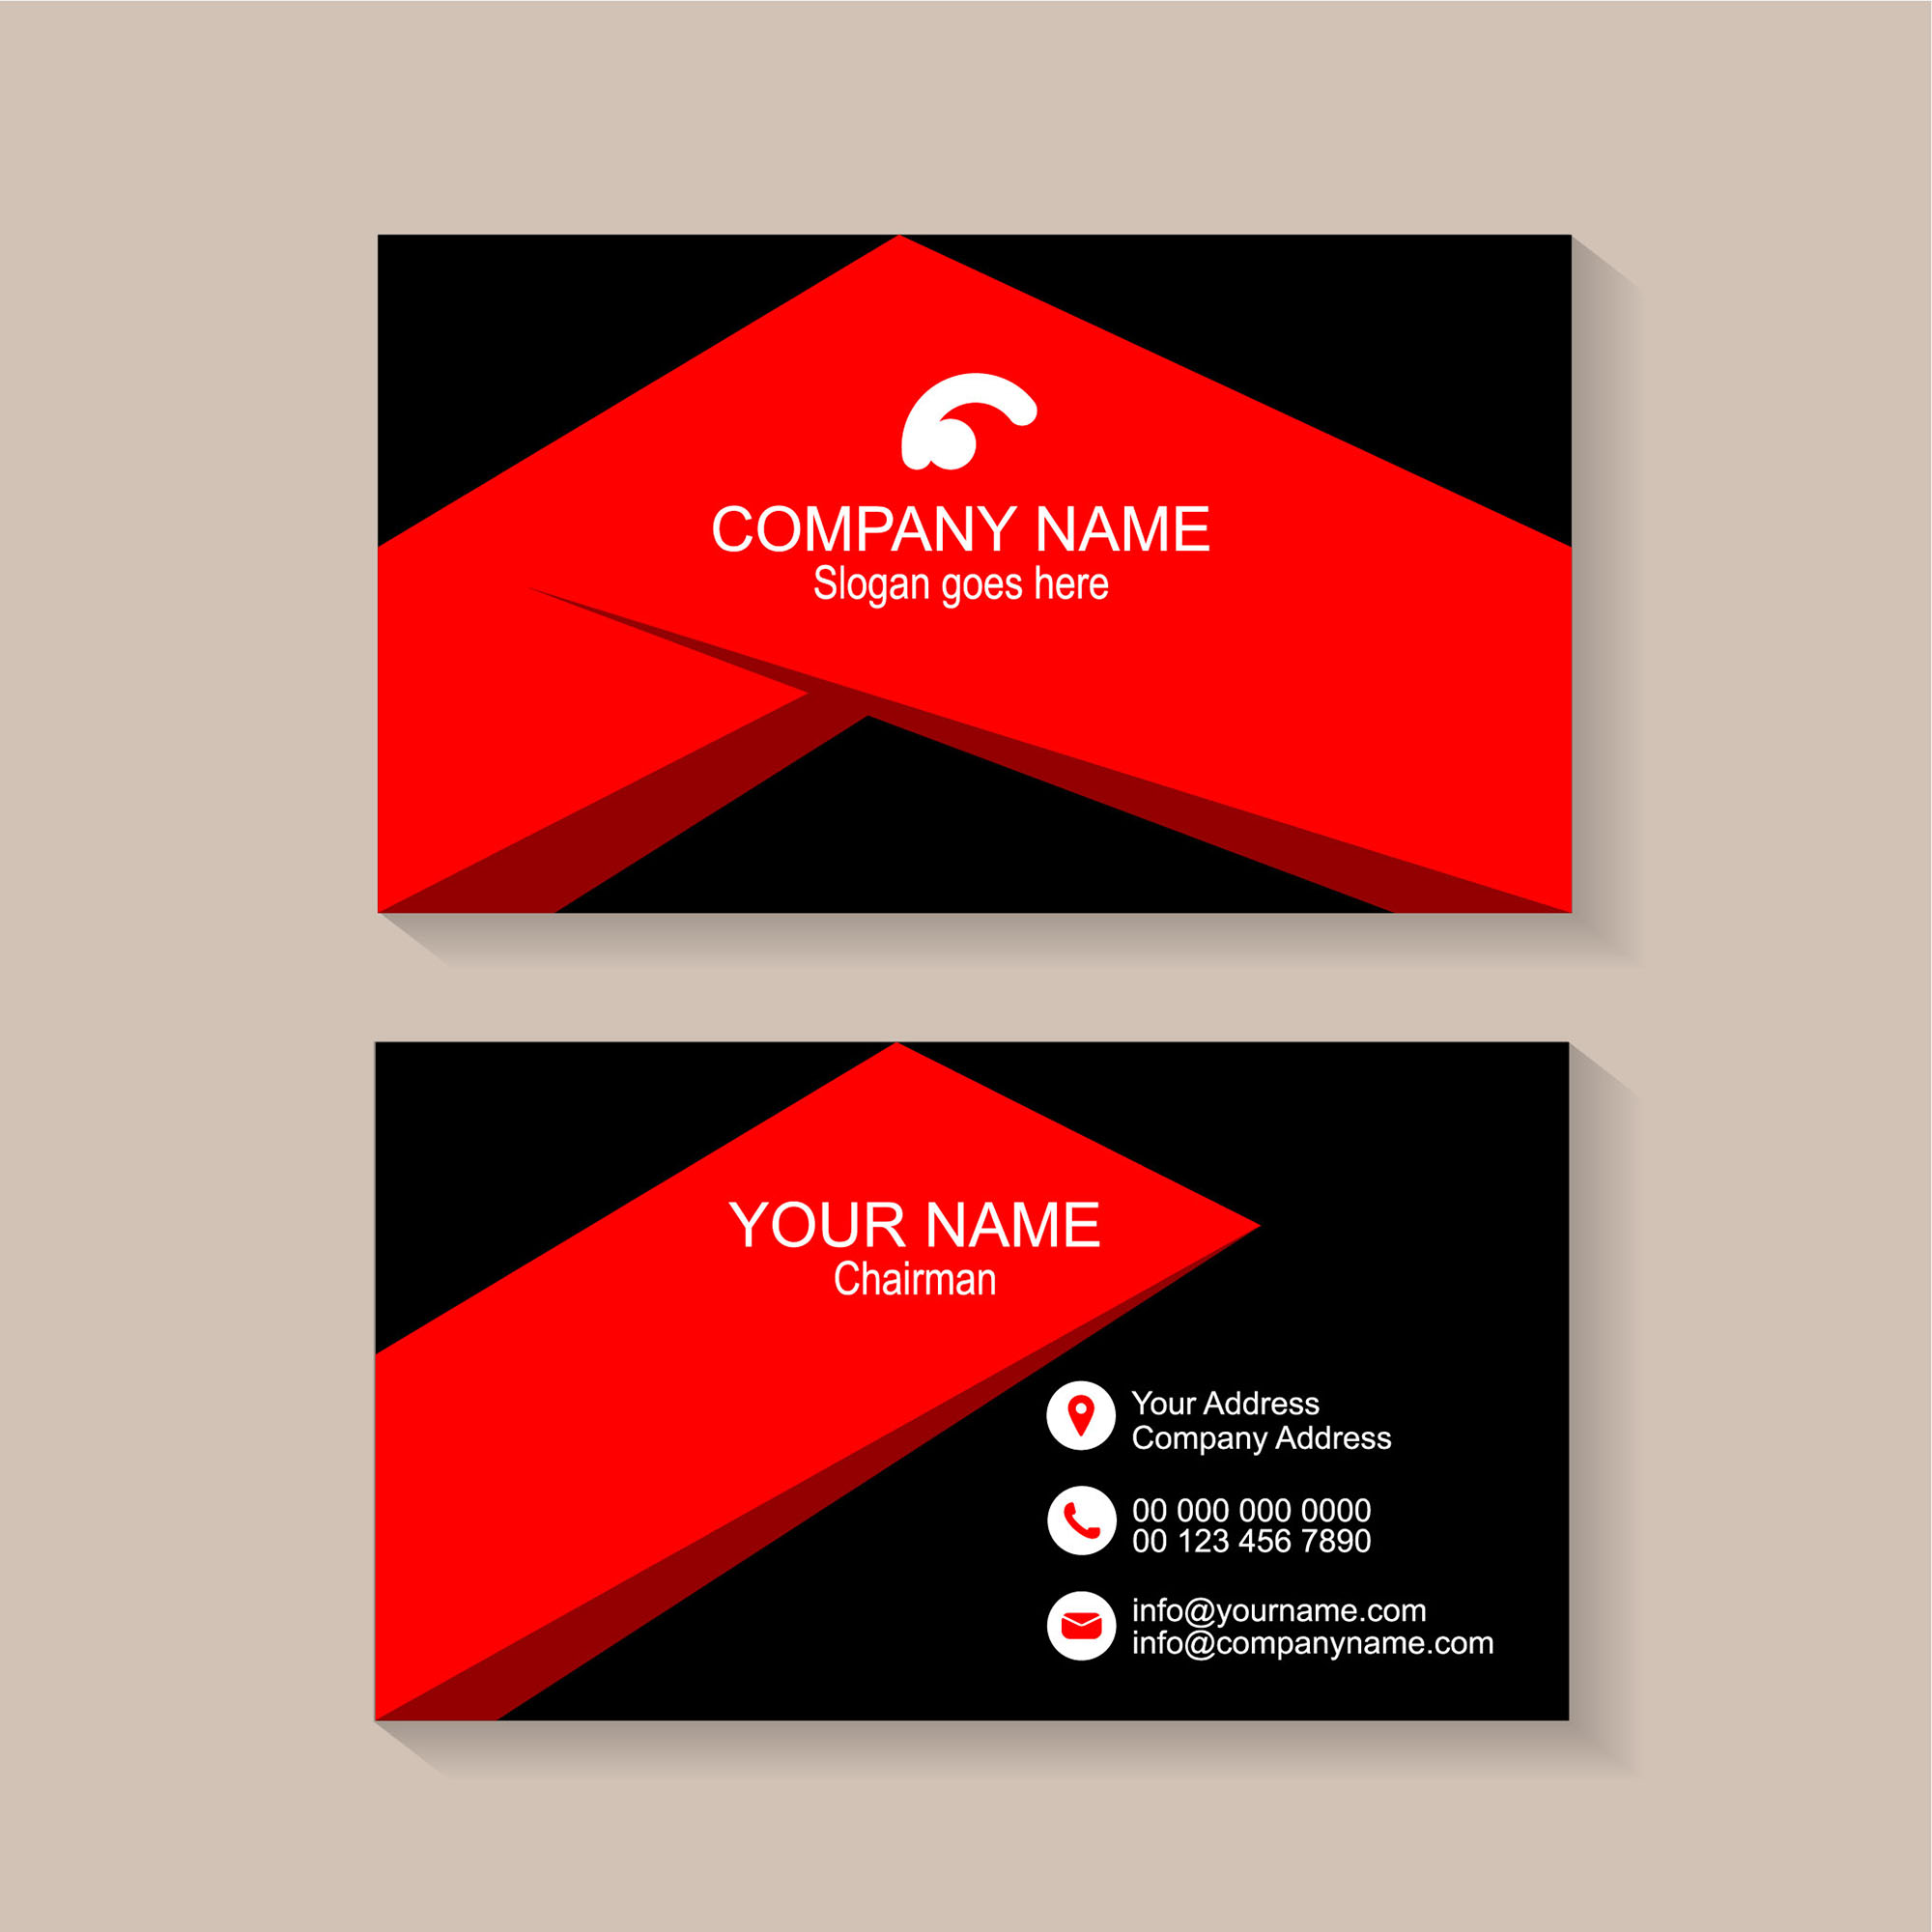 Business card template design free download wisxi business card business cards business card design business card template design templates reheart Image collections